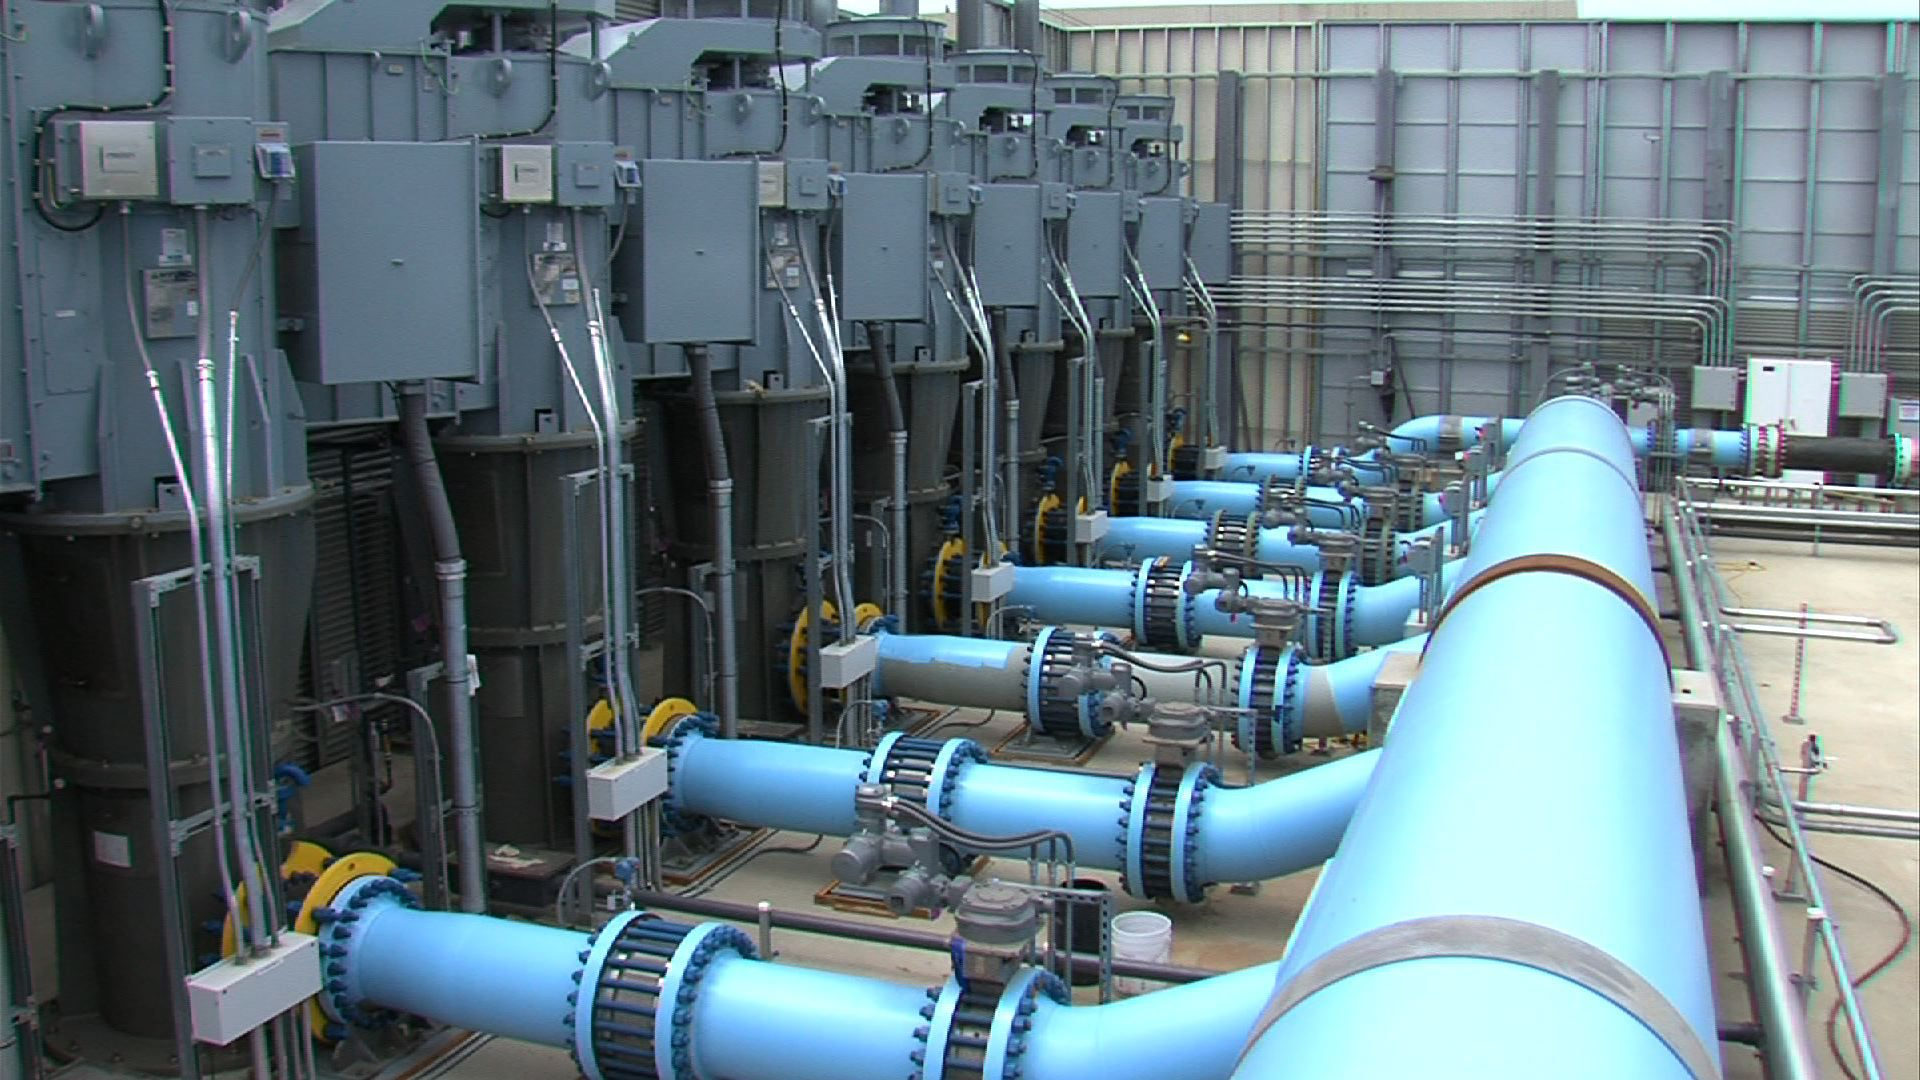 Drinking Water Starts Flowing From Carlsbad Desalination Plant Carlsbad Seawater Desalination Drinking Water